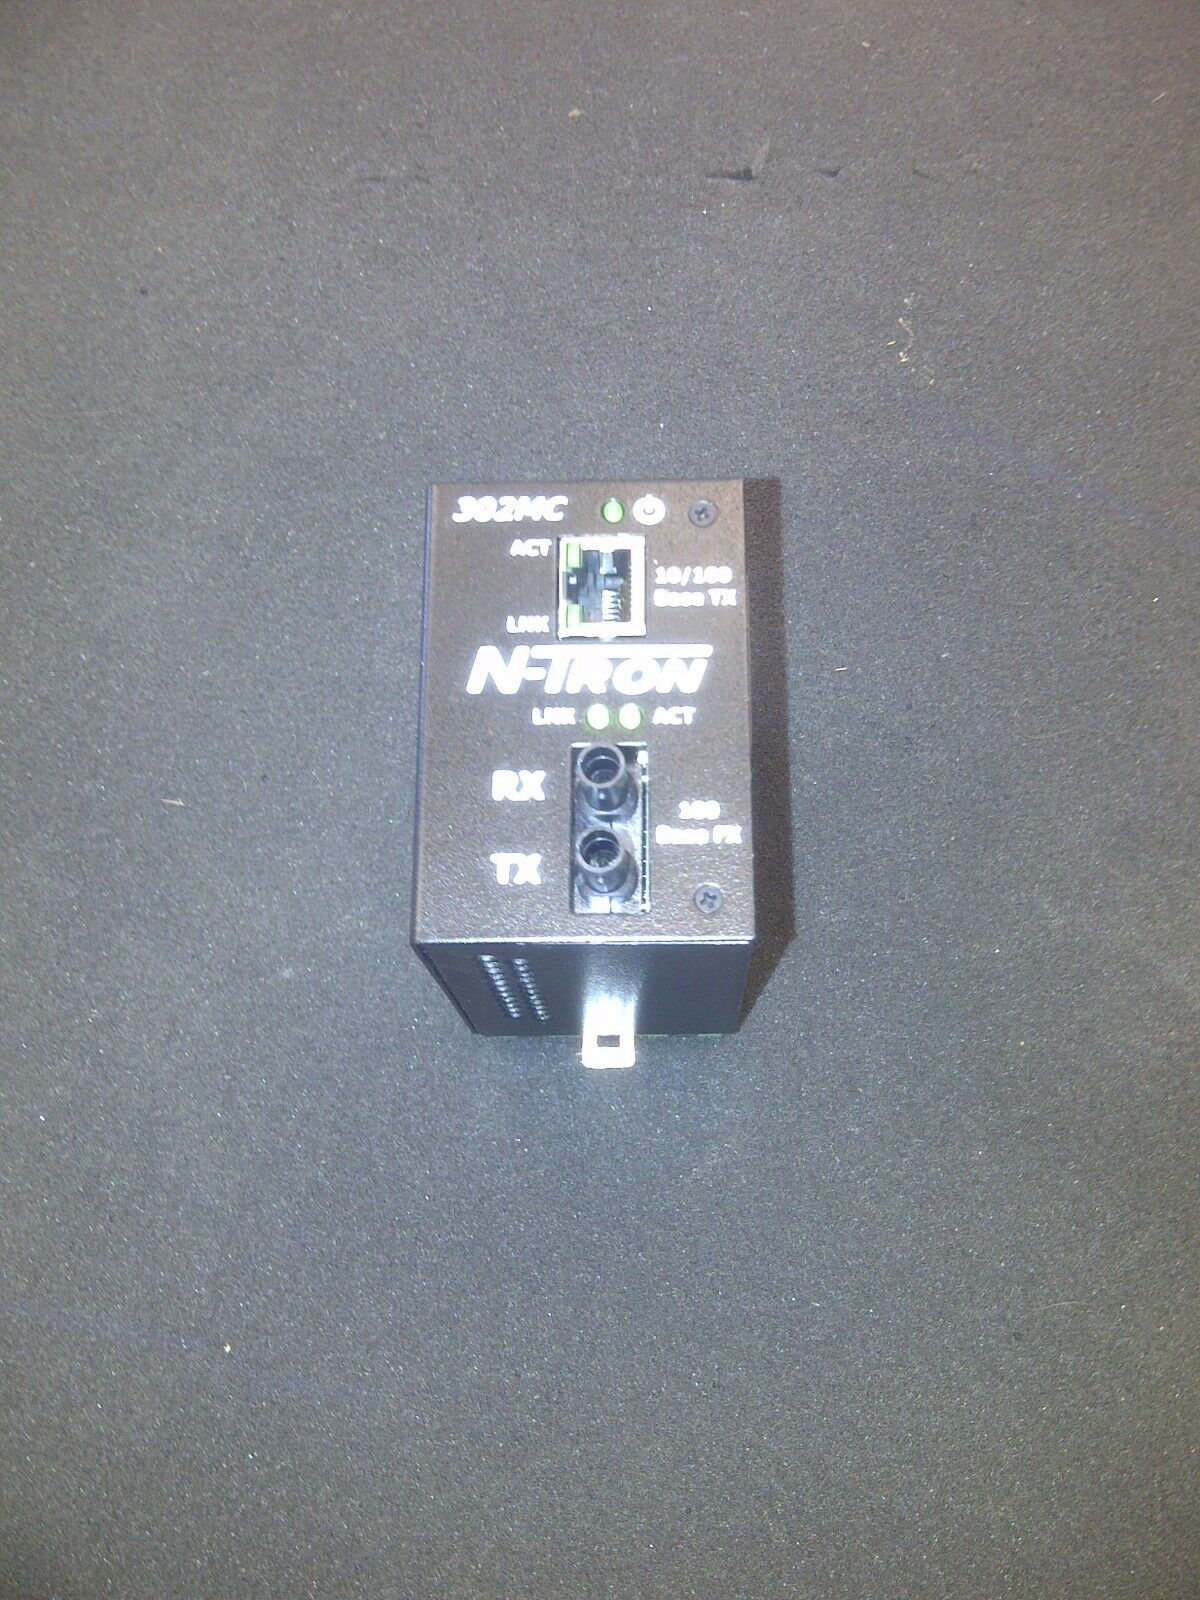 N-TRON - 302 MC - item is used but never placed into service